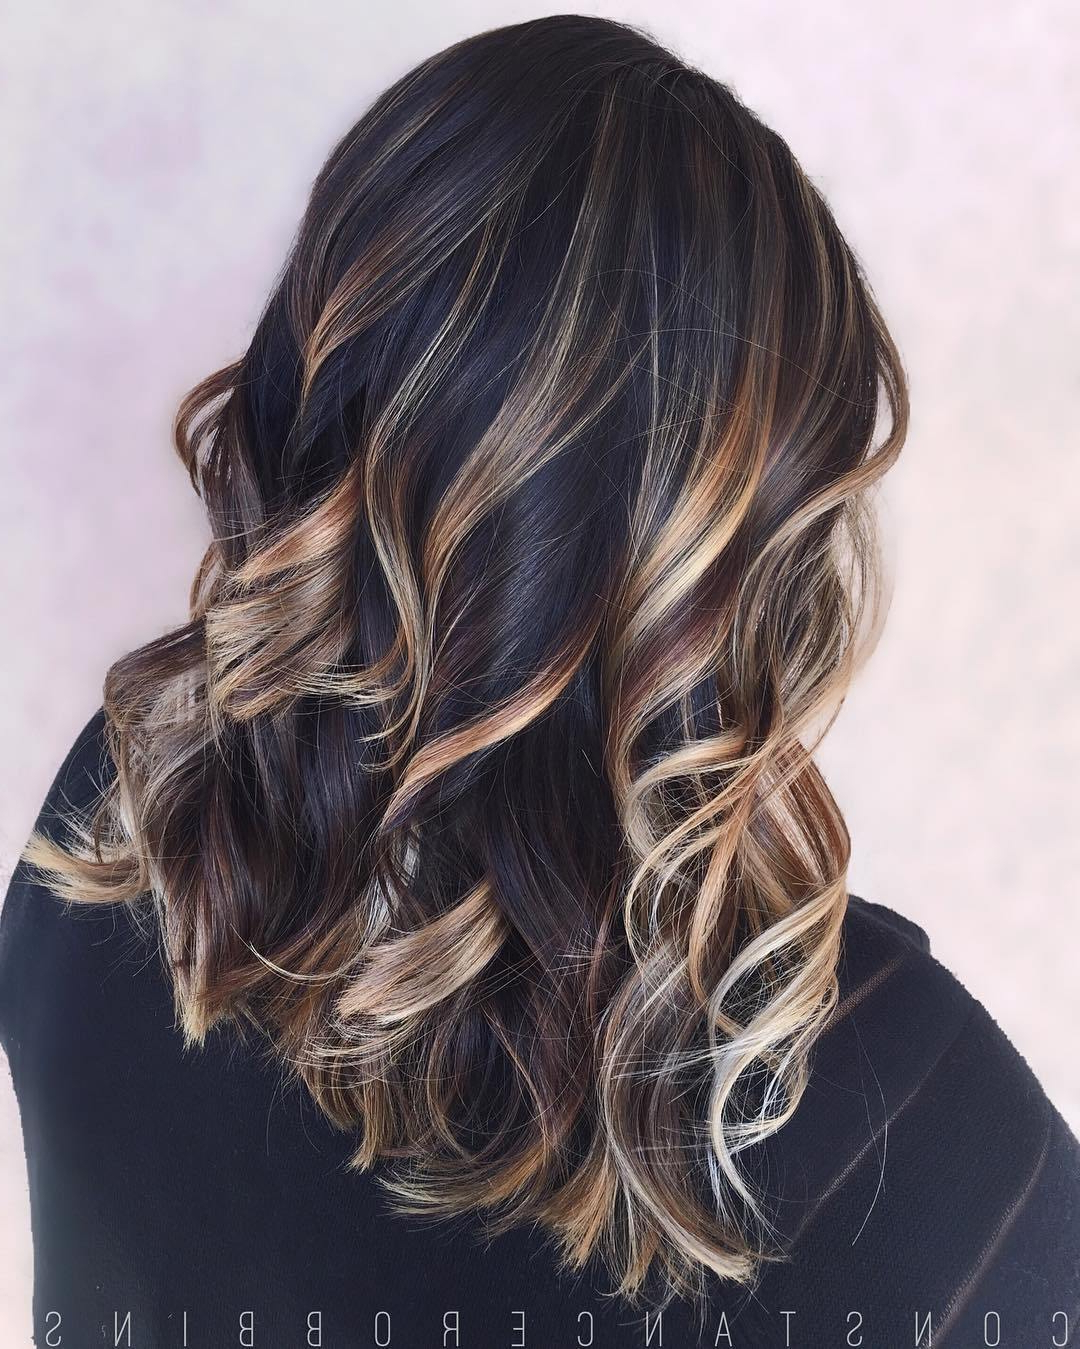 Black Hair With Blonde Highlights For 2020 Intended For Recent Shiny Black Haircuts With Flicked Layers (View 14 of 20)